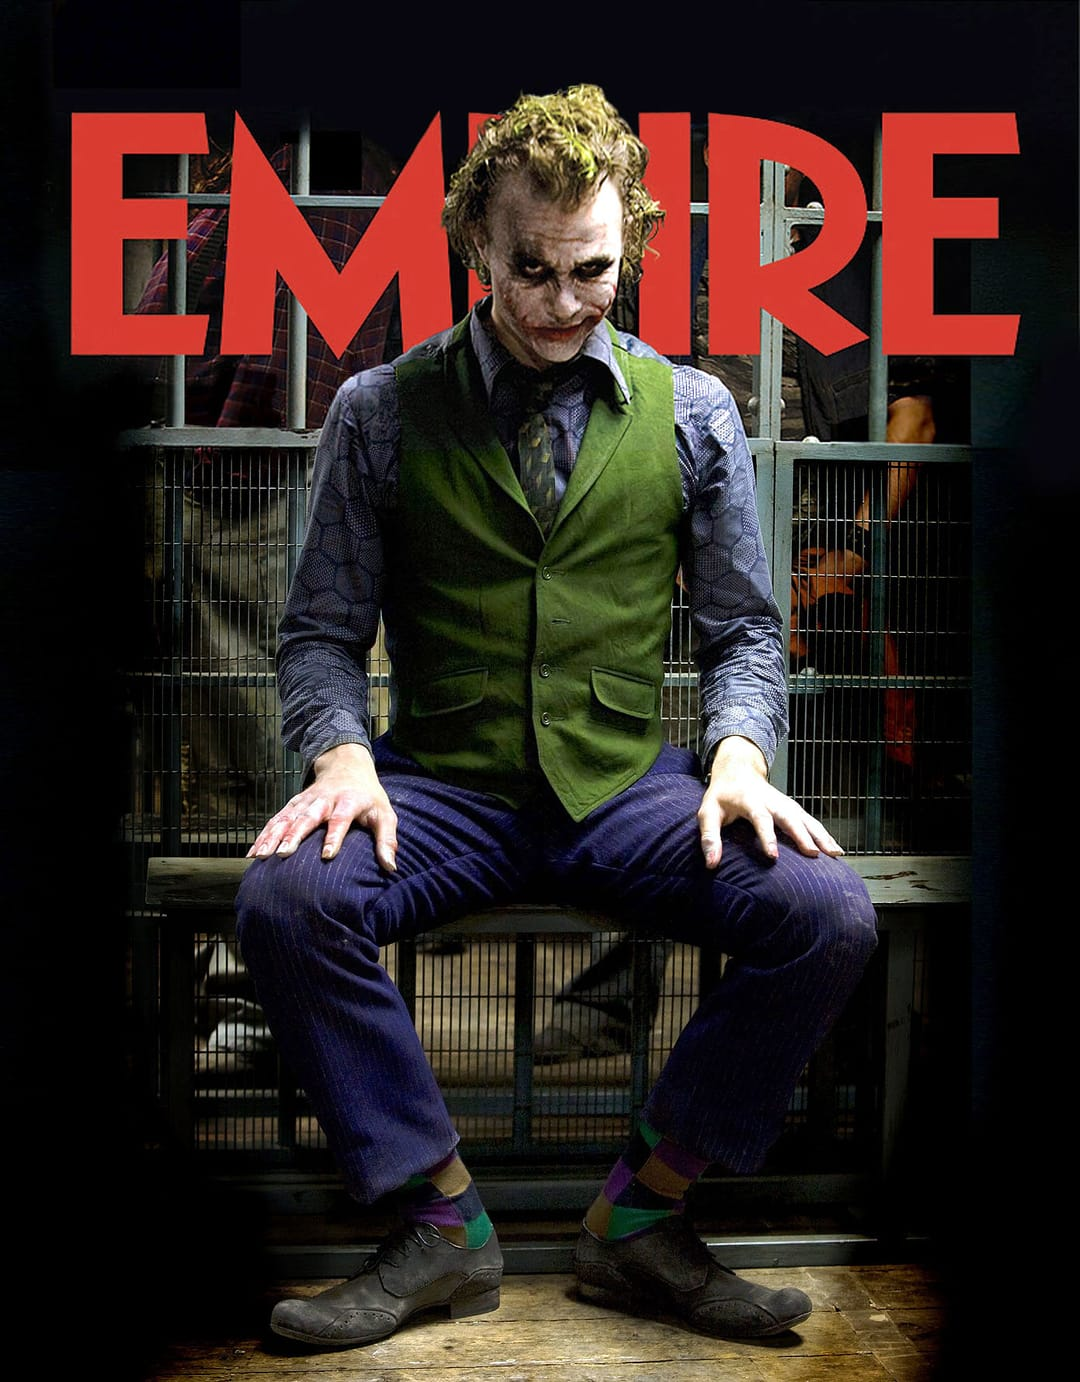 Empire Magazine with Jared Leto as The Joker on the cover